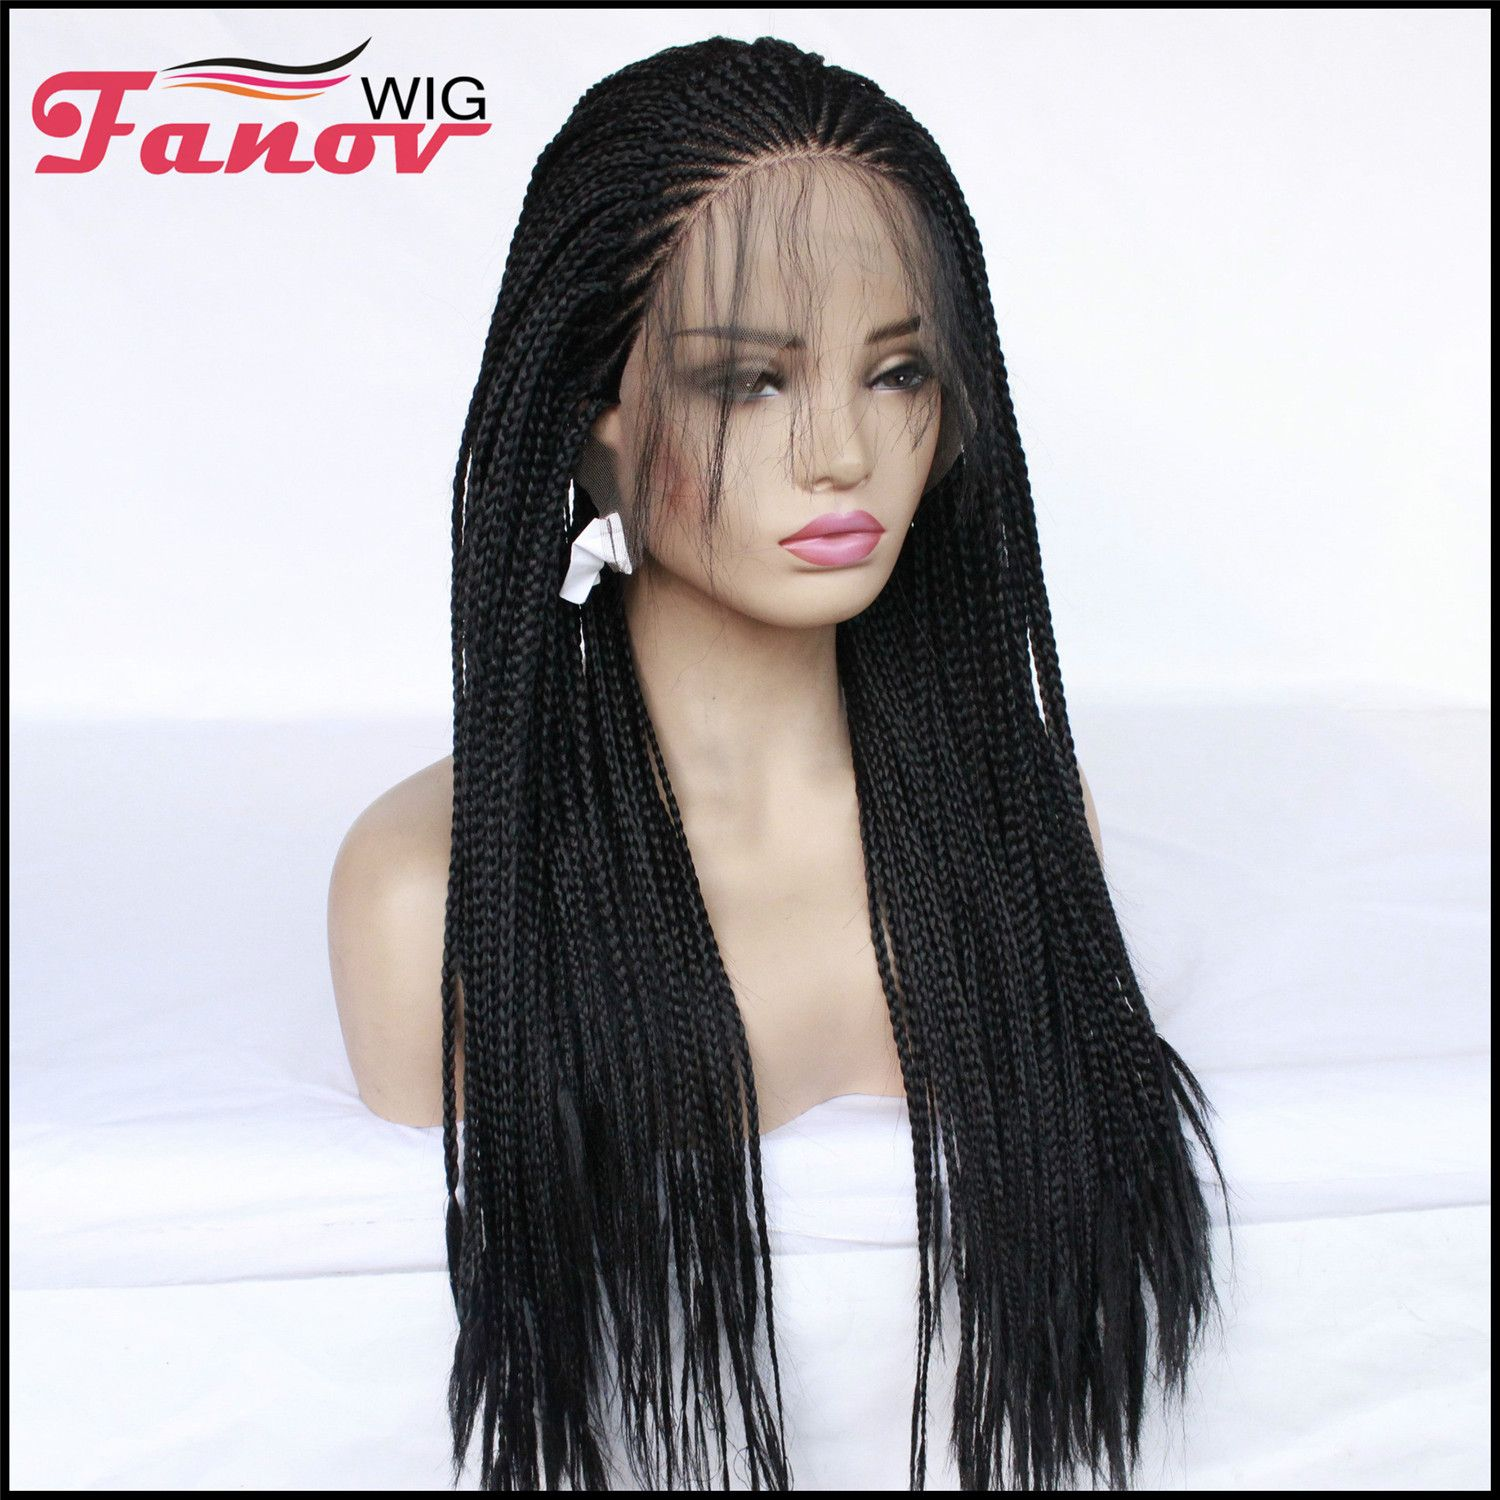 Fanov Wig Cornrow Synthetic Hair Box Braided Wig 13x4 Lace Parting Swiss Lace Wig Black Diva Box Braid Wig Braids Wig Black Box Braids